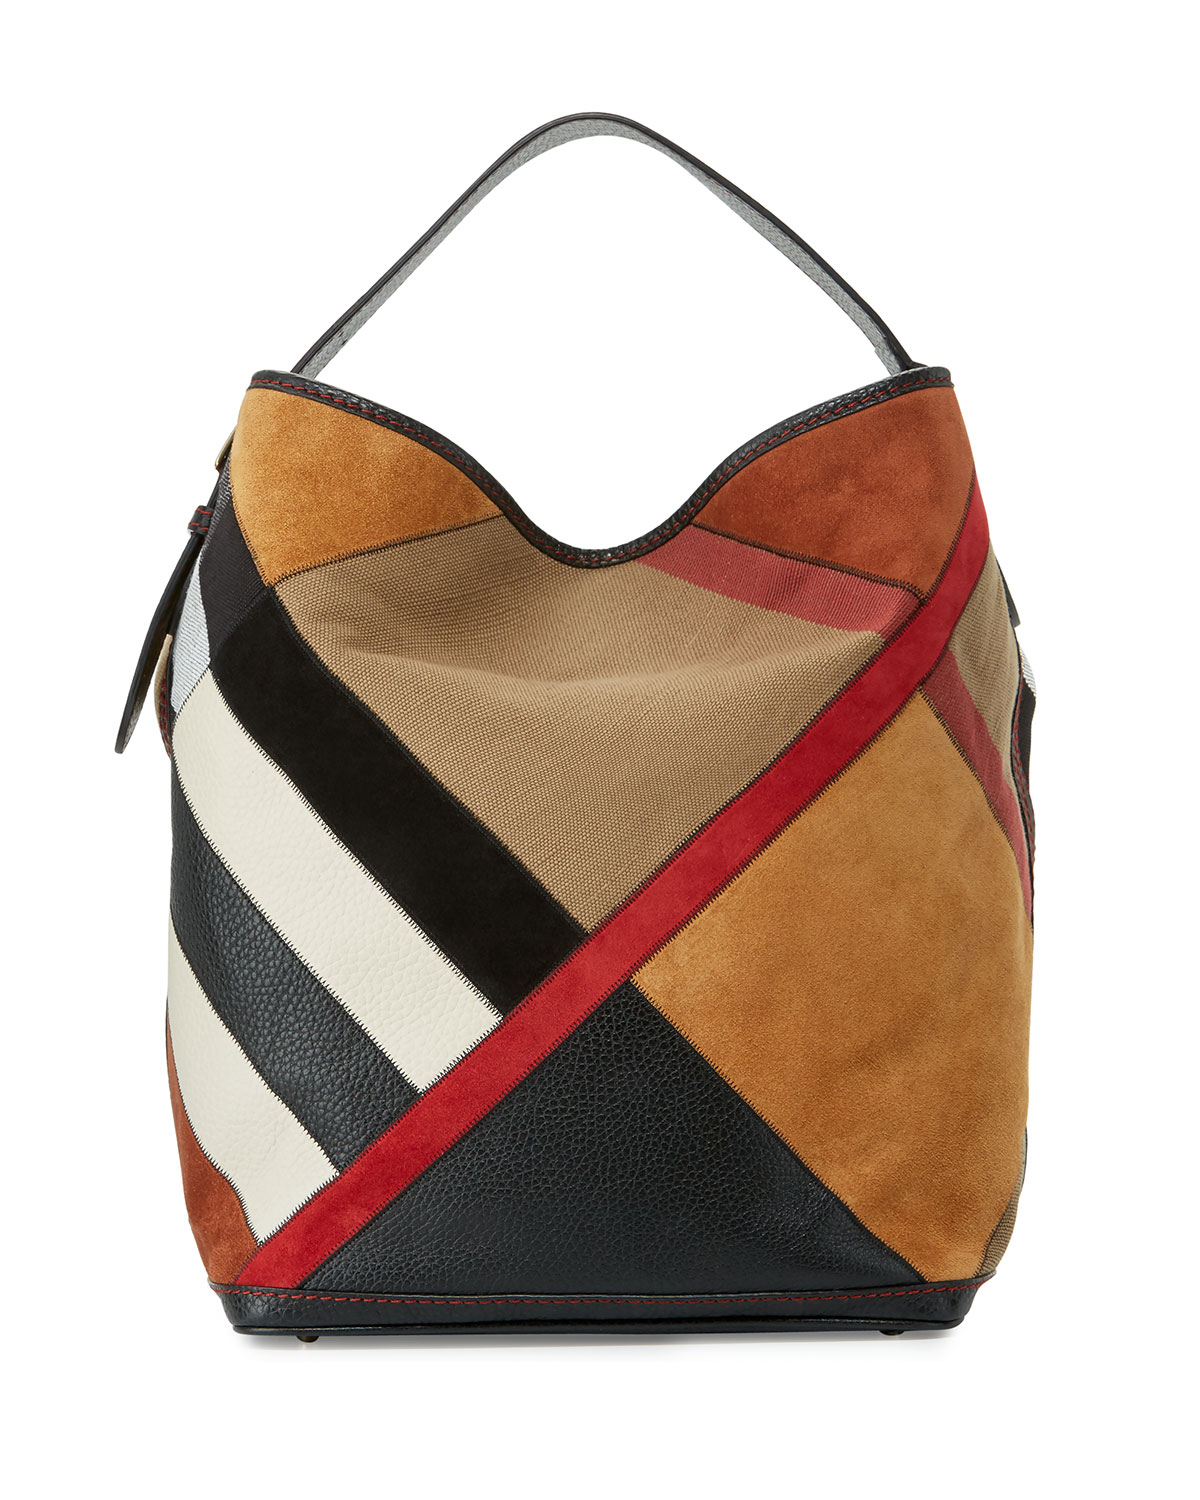 955e48077b37 Burberry Ashby Colorblock Check Canvas Hobo Bag